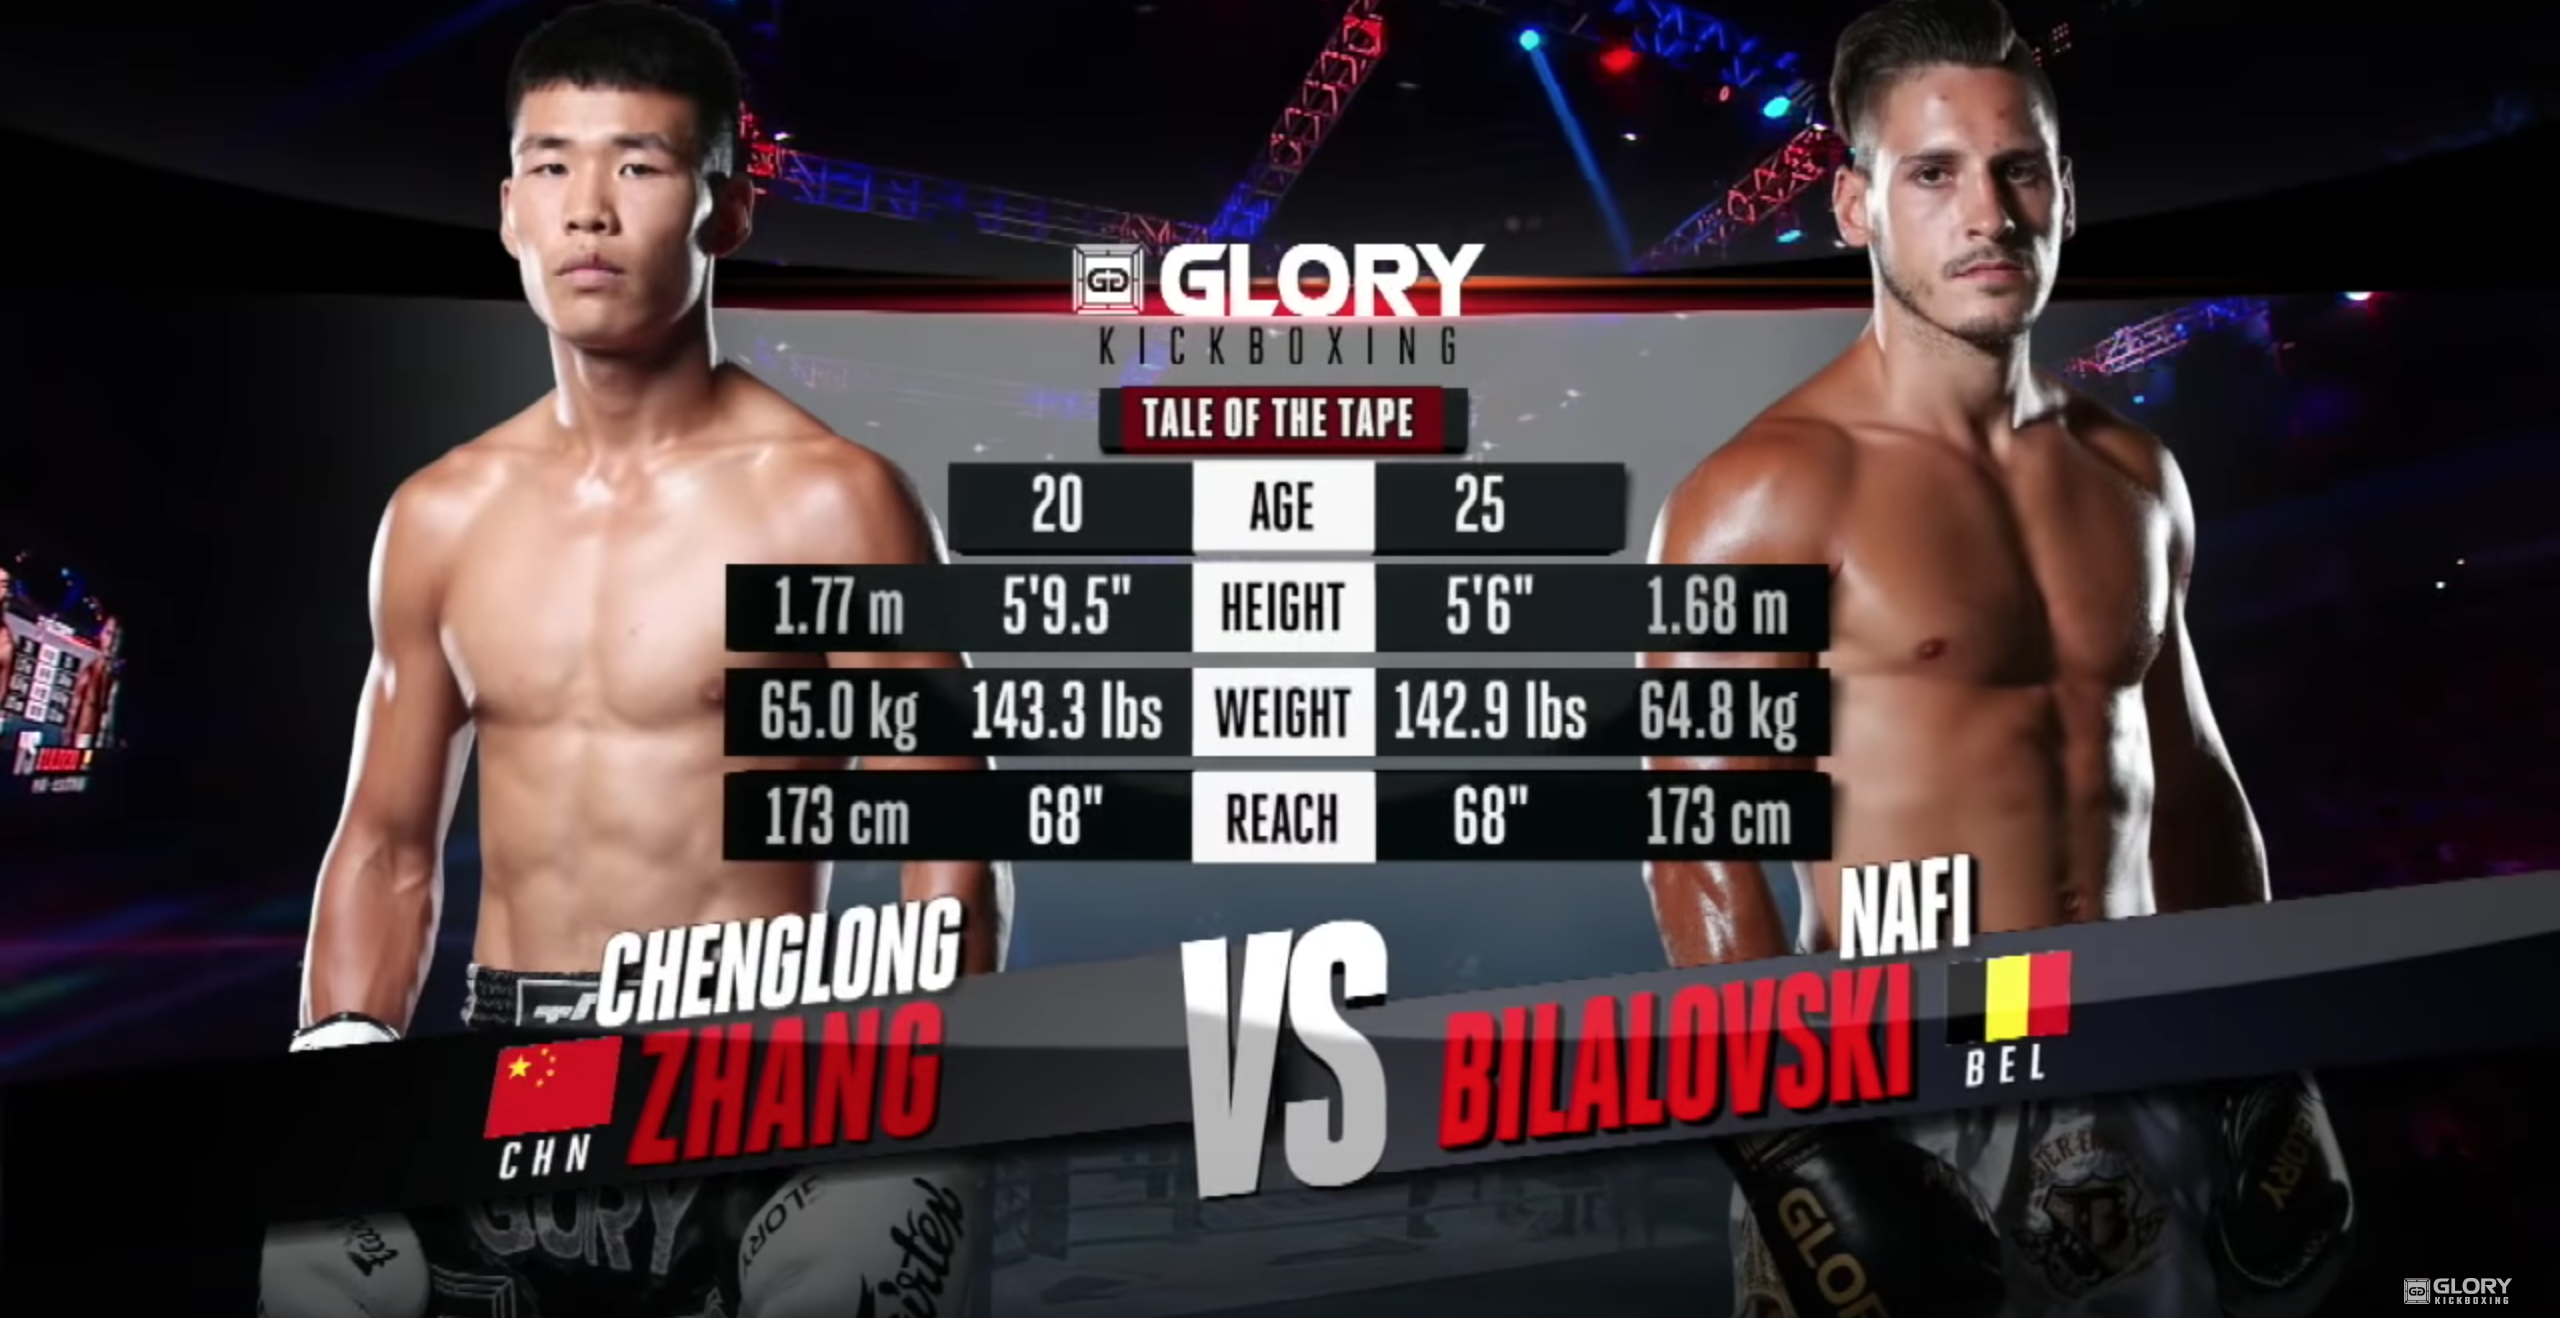 GLORY 57: Chenlong Zhang vs. Nafi Bilalovski - Full Fight